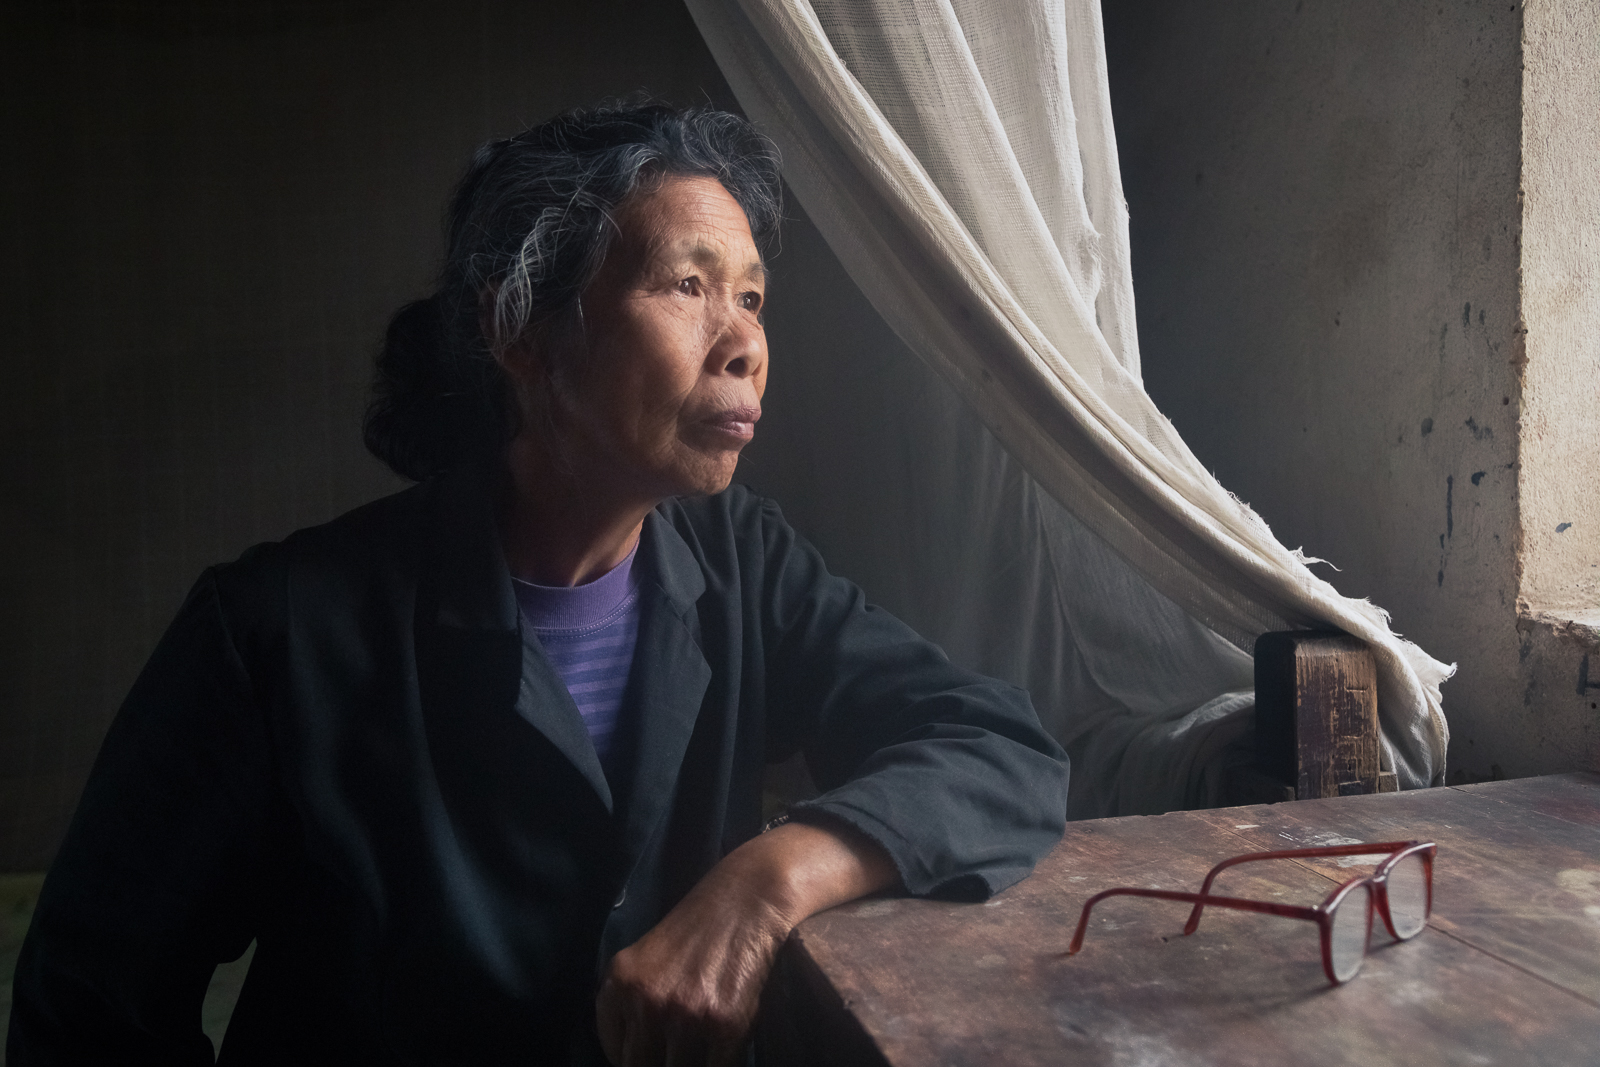 2017, asia, asian, china, chinese, elderly, environmental portait, female, guilin, male, man, old, older, people, portrait, window, window light, woman, xing'ping, xingping, yangshuo, yangshuo area, photo